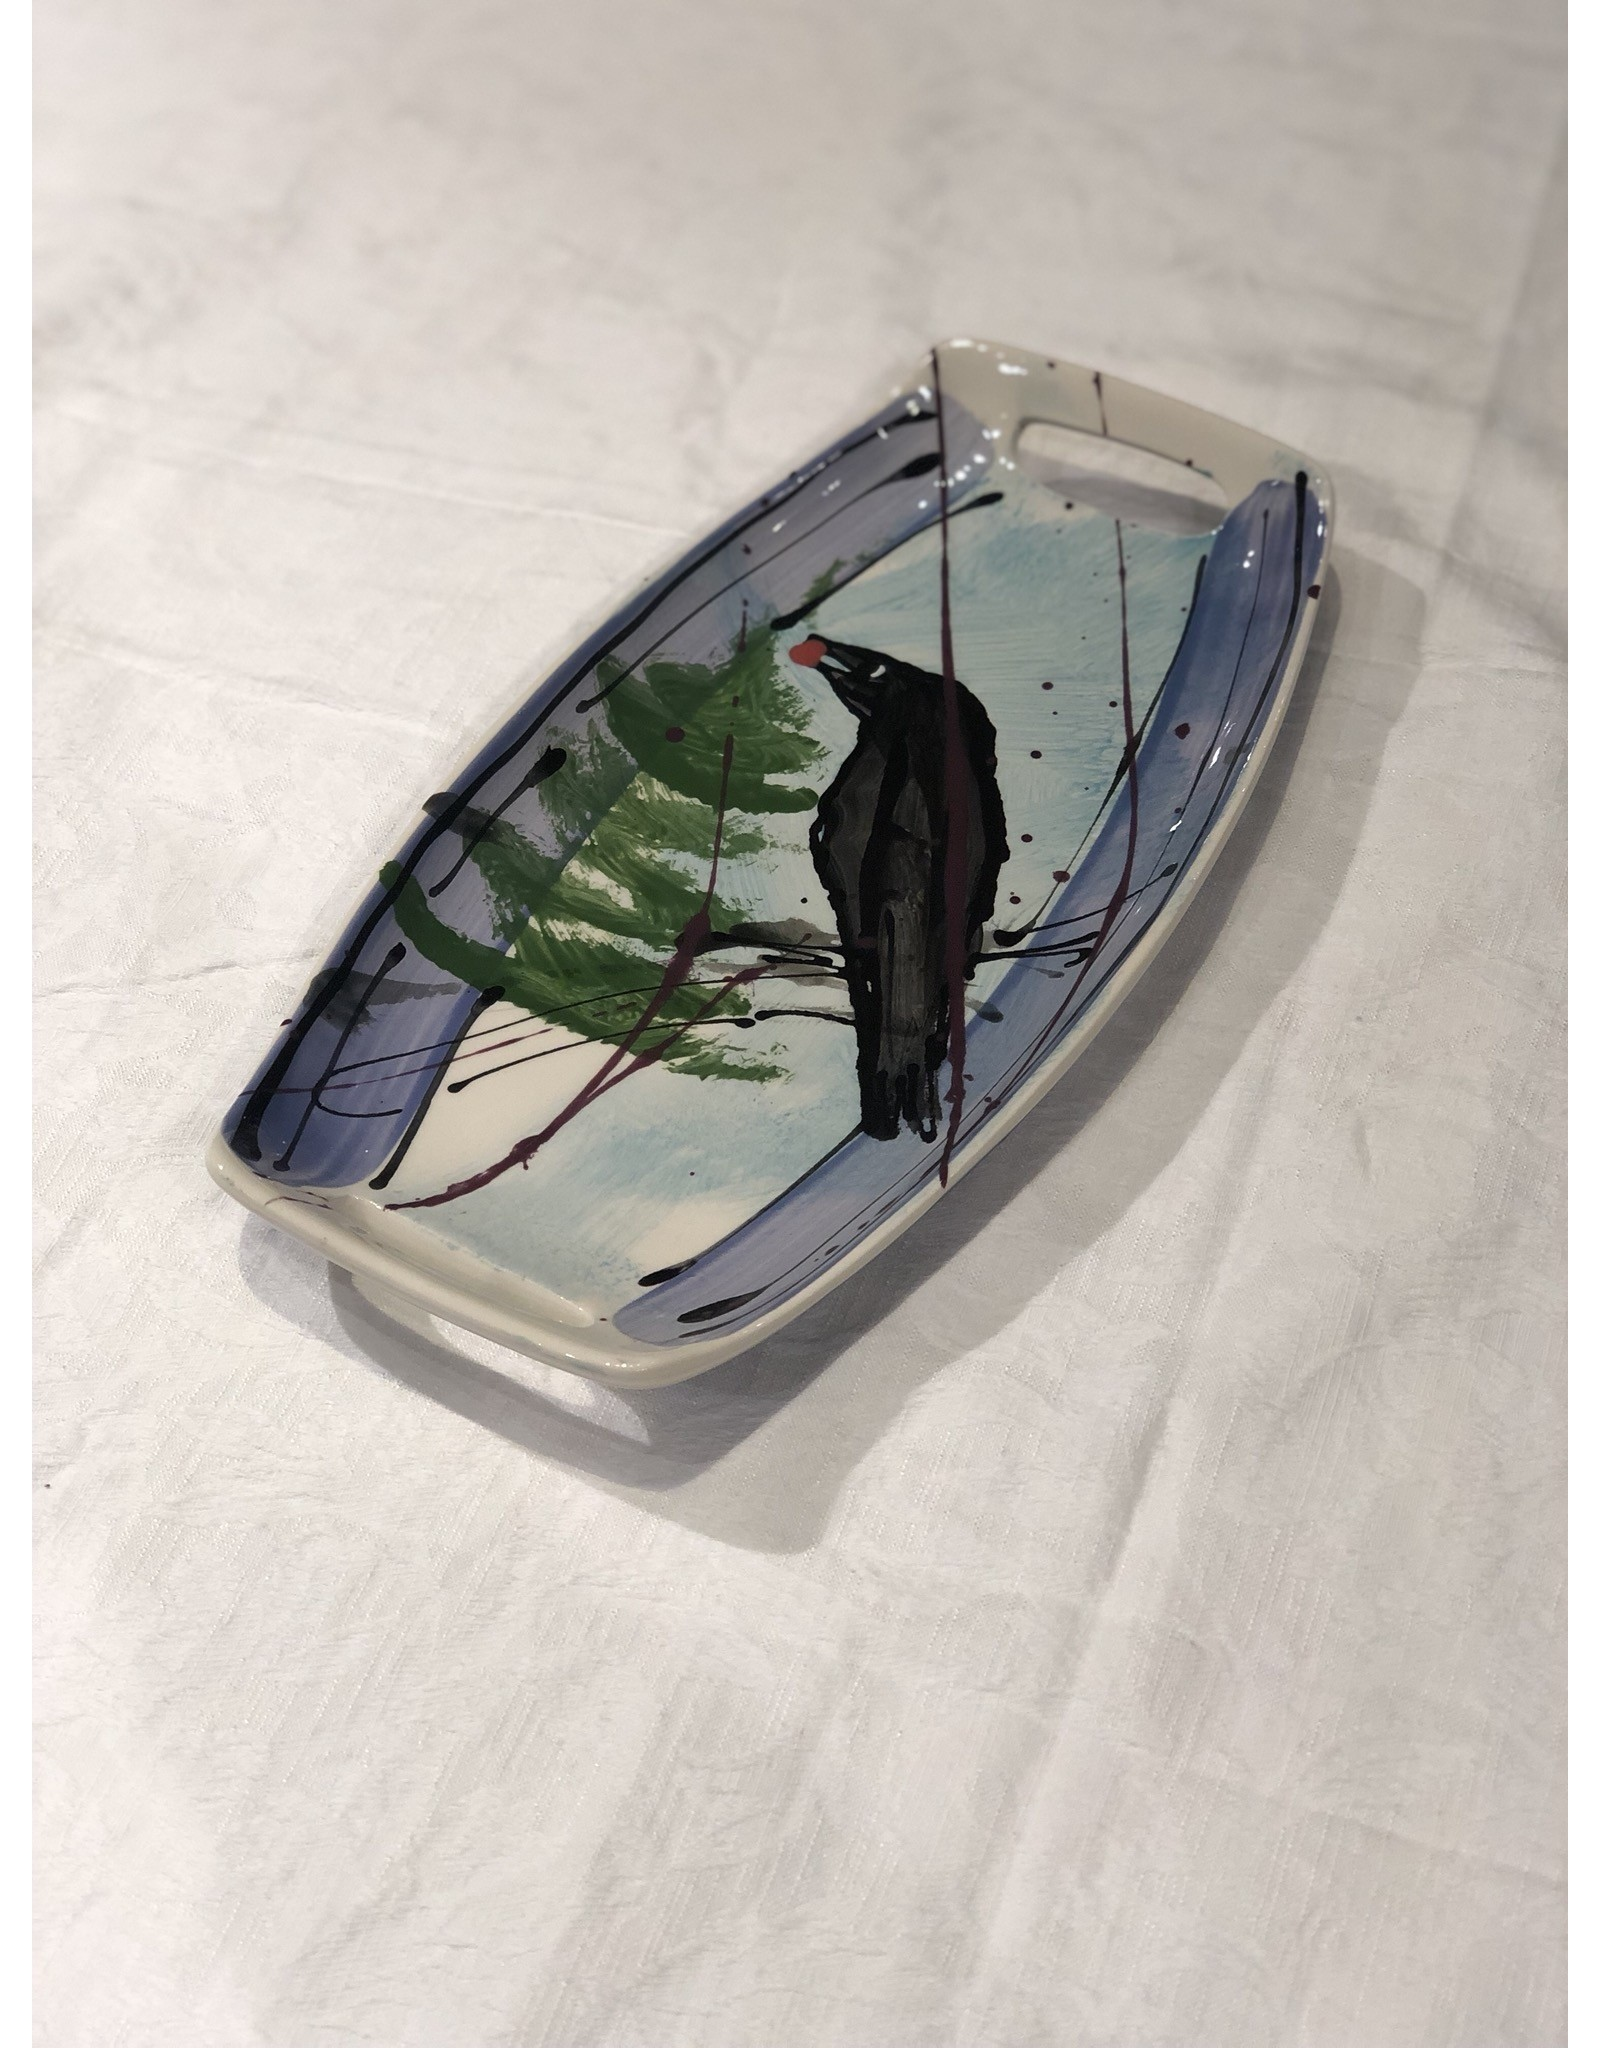 Donna Toohey Donna Toohey Scoop Tray Raven